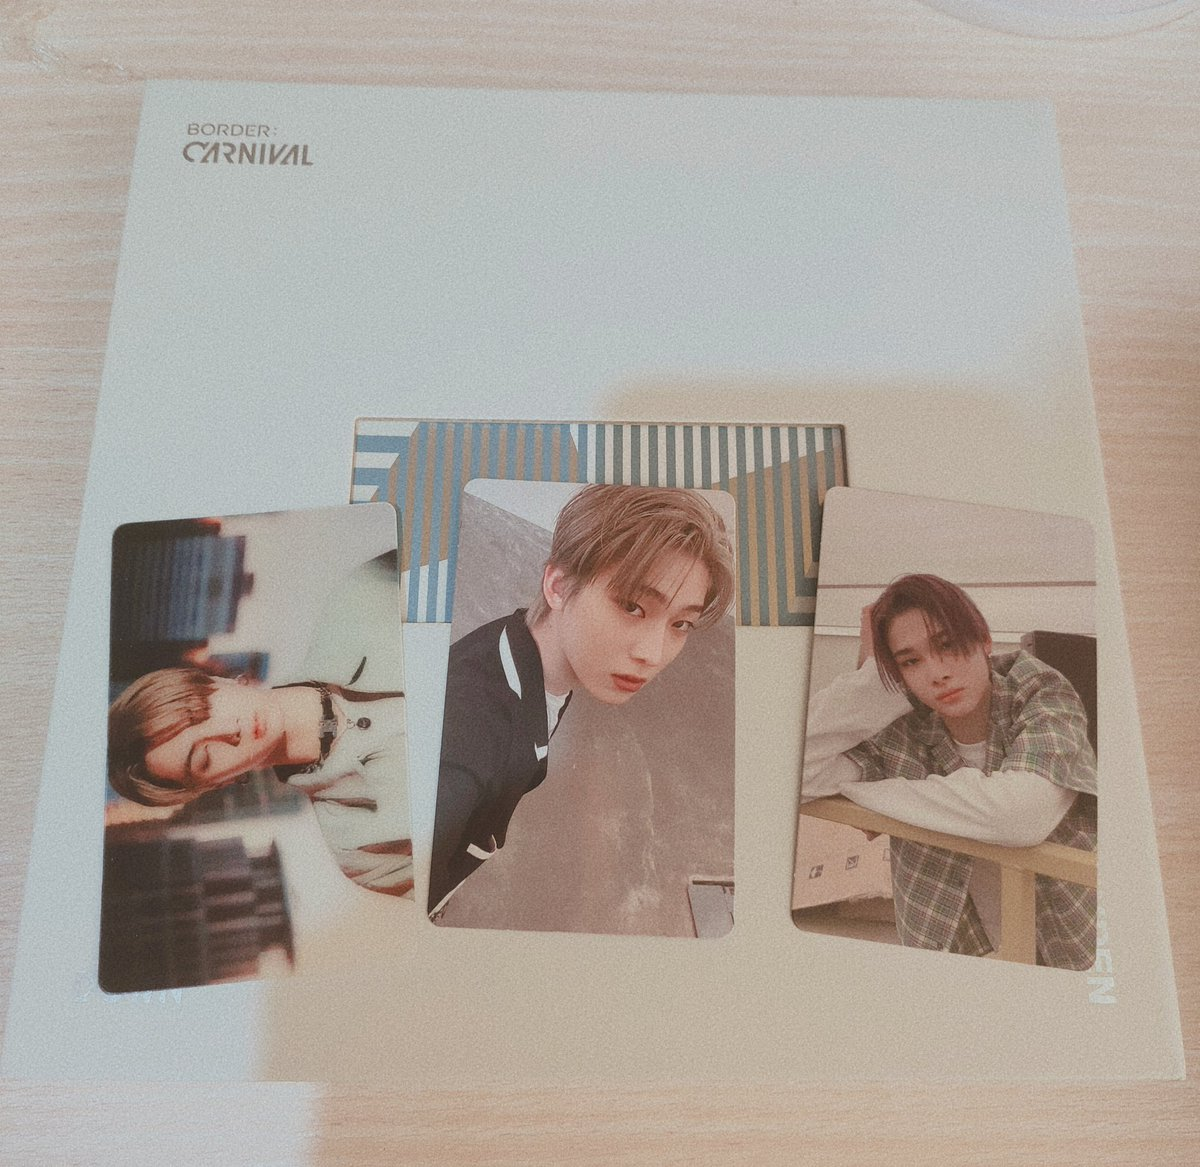 I just got my album and I pulled sunoo, ni ki, and jay pcs 😭💗 I'm literally squealing when I got them since they're my biases!!! ( ꈍᴗꈍ)(人*´∀`)。*゚+ #ENHYPEN1stWin #ENHYPEN #SUNOO #JAY #NI_KI